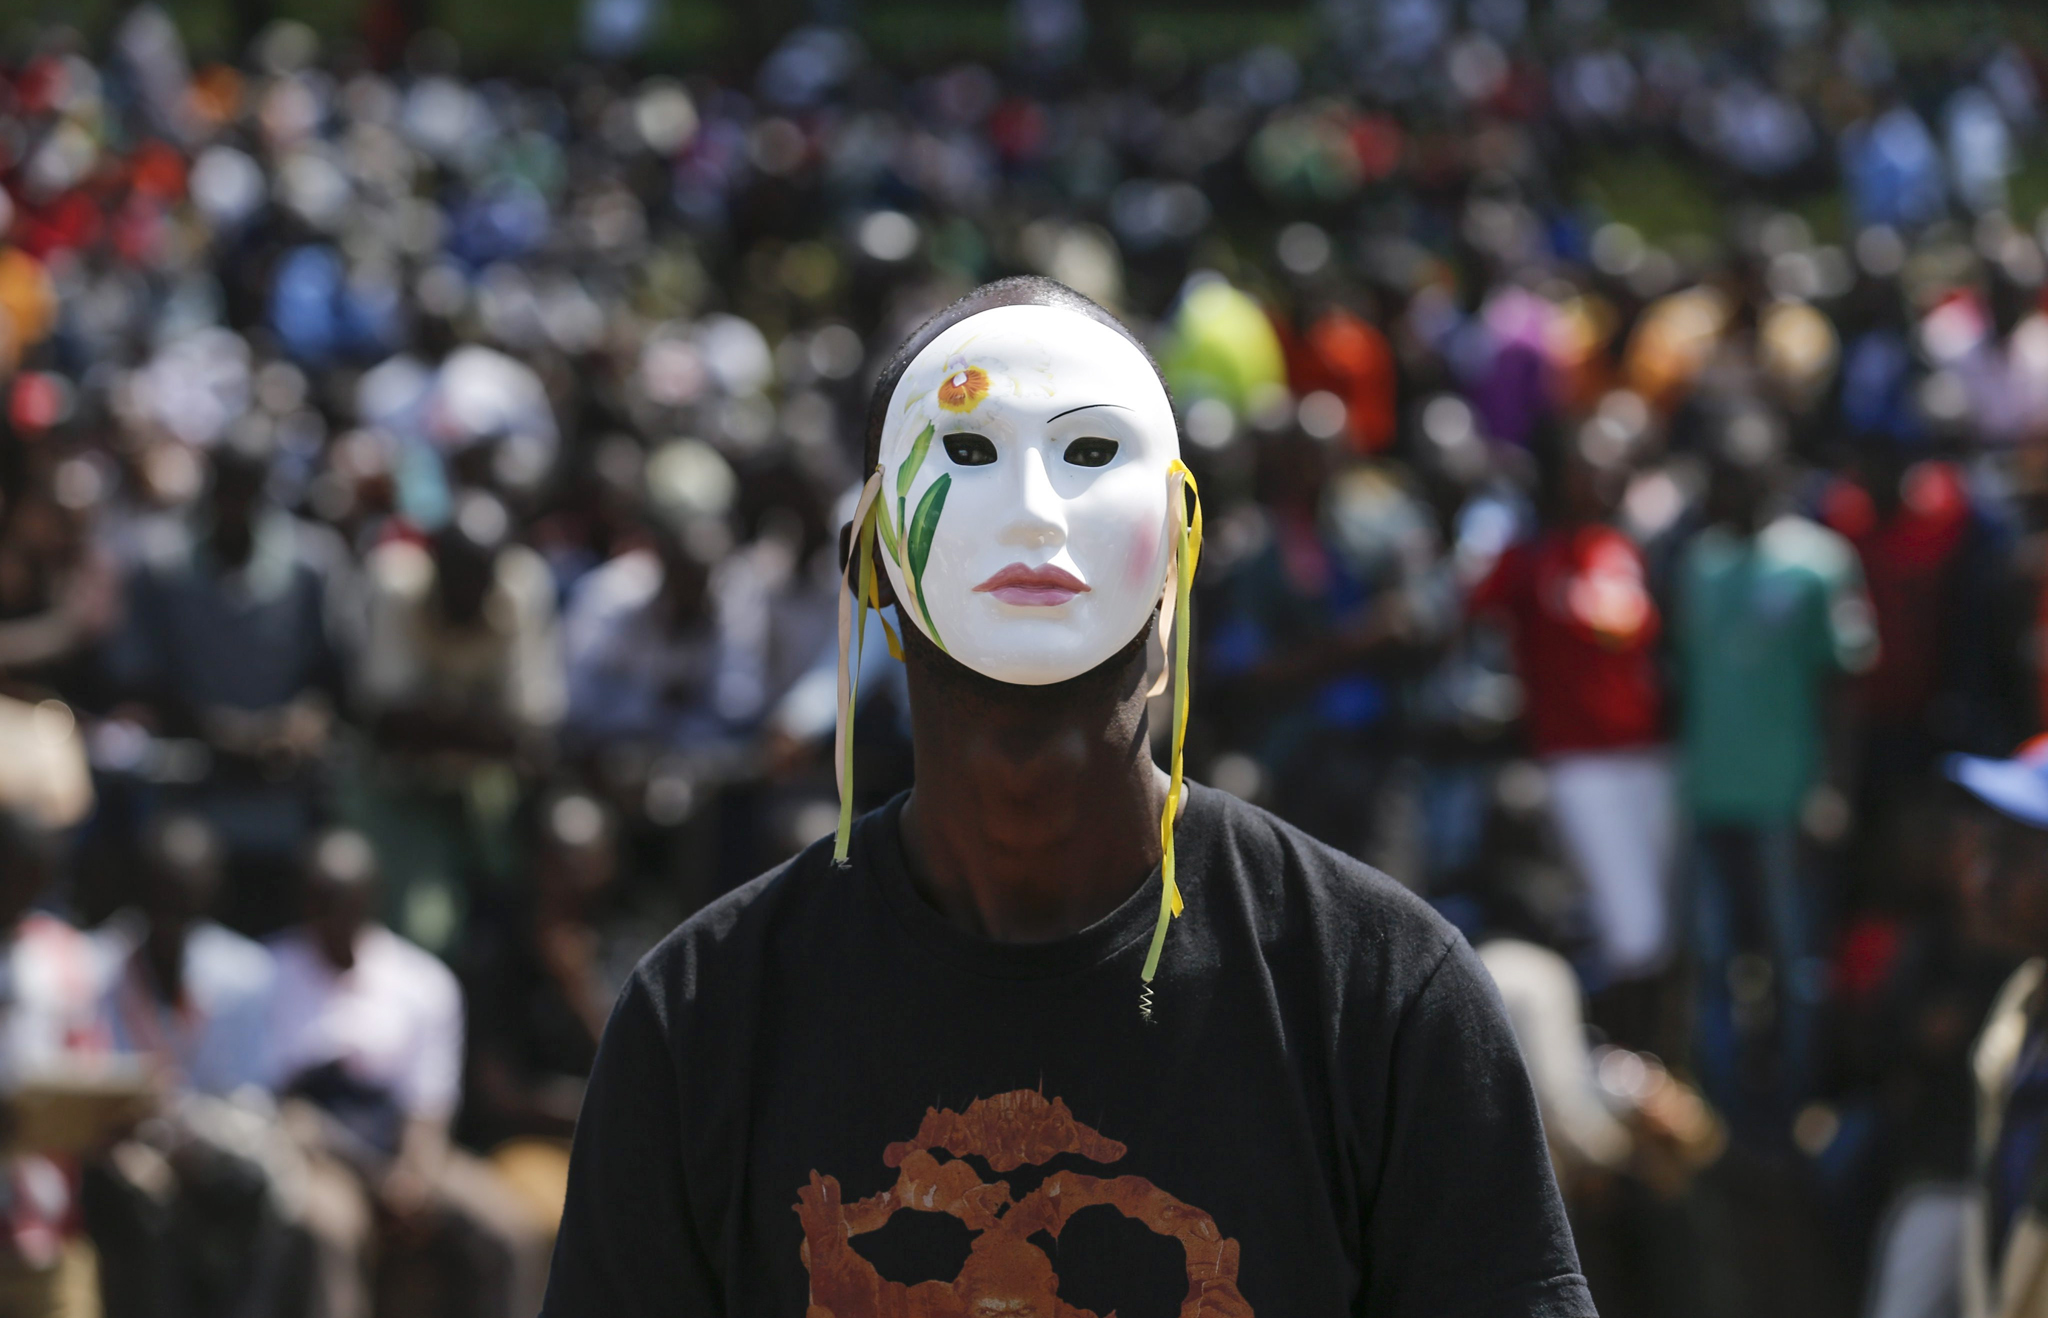 epa05340705 A supporter of the opposition Coalition for Reforms and Democracy (CORD), led by former Prime Minister Raila Odinga, wears a mask and looks on during a rally held in Nairobi, Kenya, 01 June 2016. Kenyan opposition staged a rally on Madaraka Day, the national holiday to commemorate the day that Kenya attained internal self-rule from Britain in 1963, to protest against the country's electoral body Independent Electoral and Boundaries Commission (IEBC) and push for reforms ahead of the next year's general elections.  EPA/DAI KUROKAWA